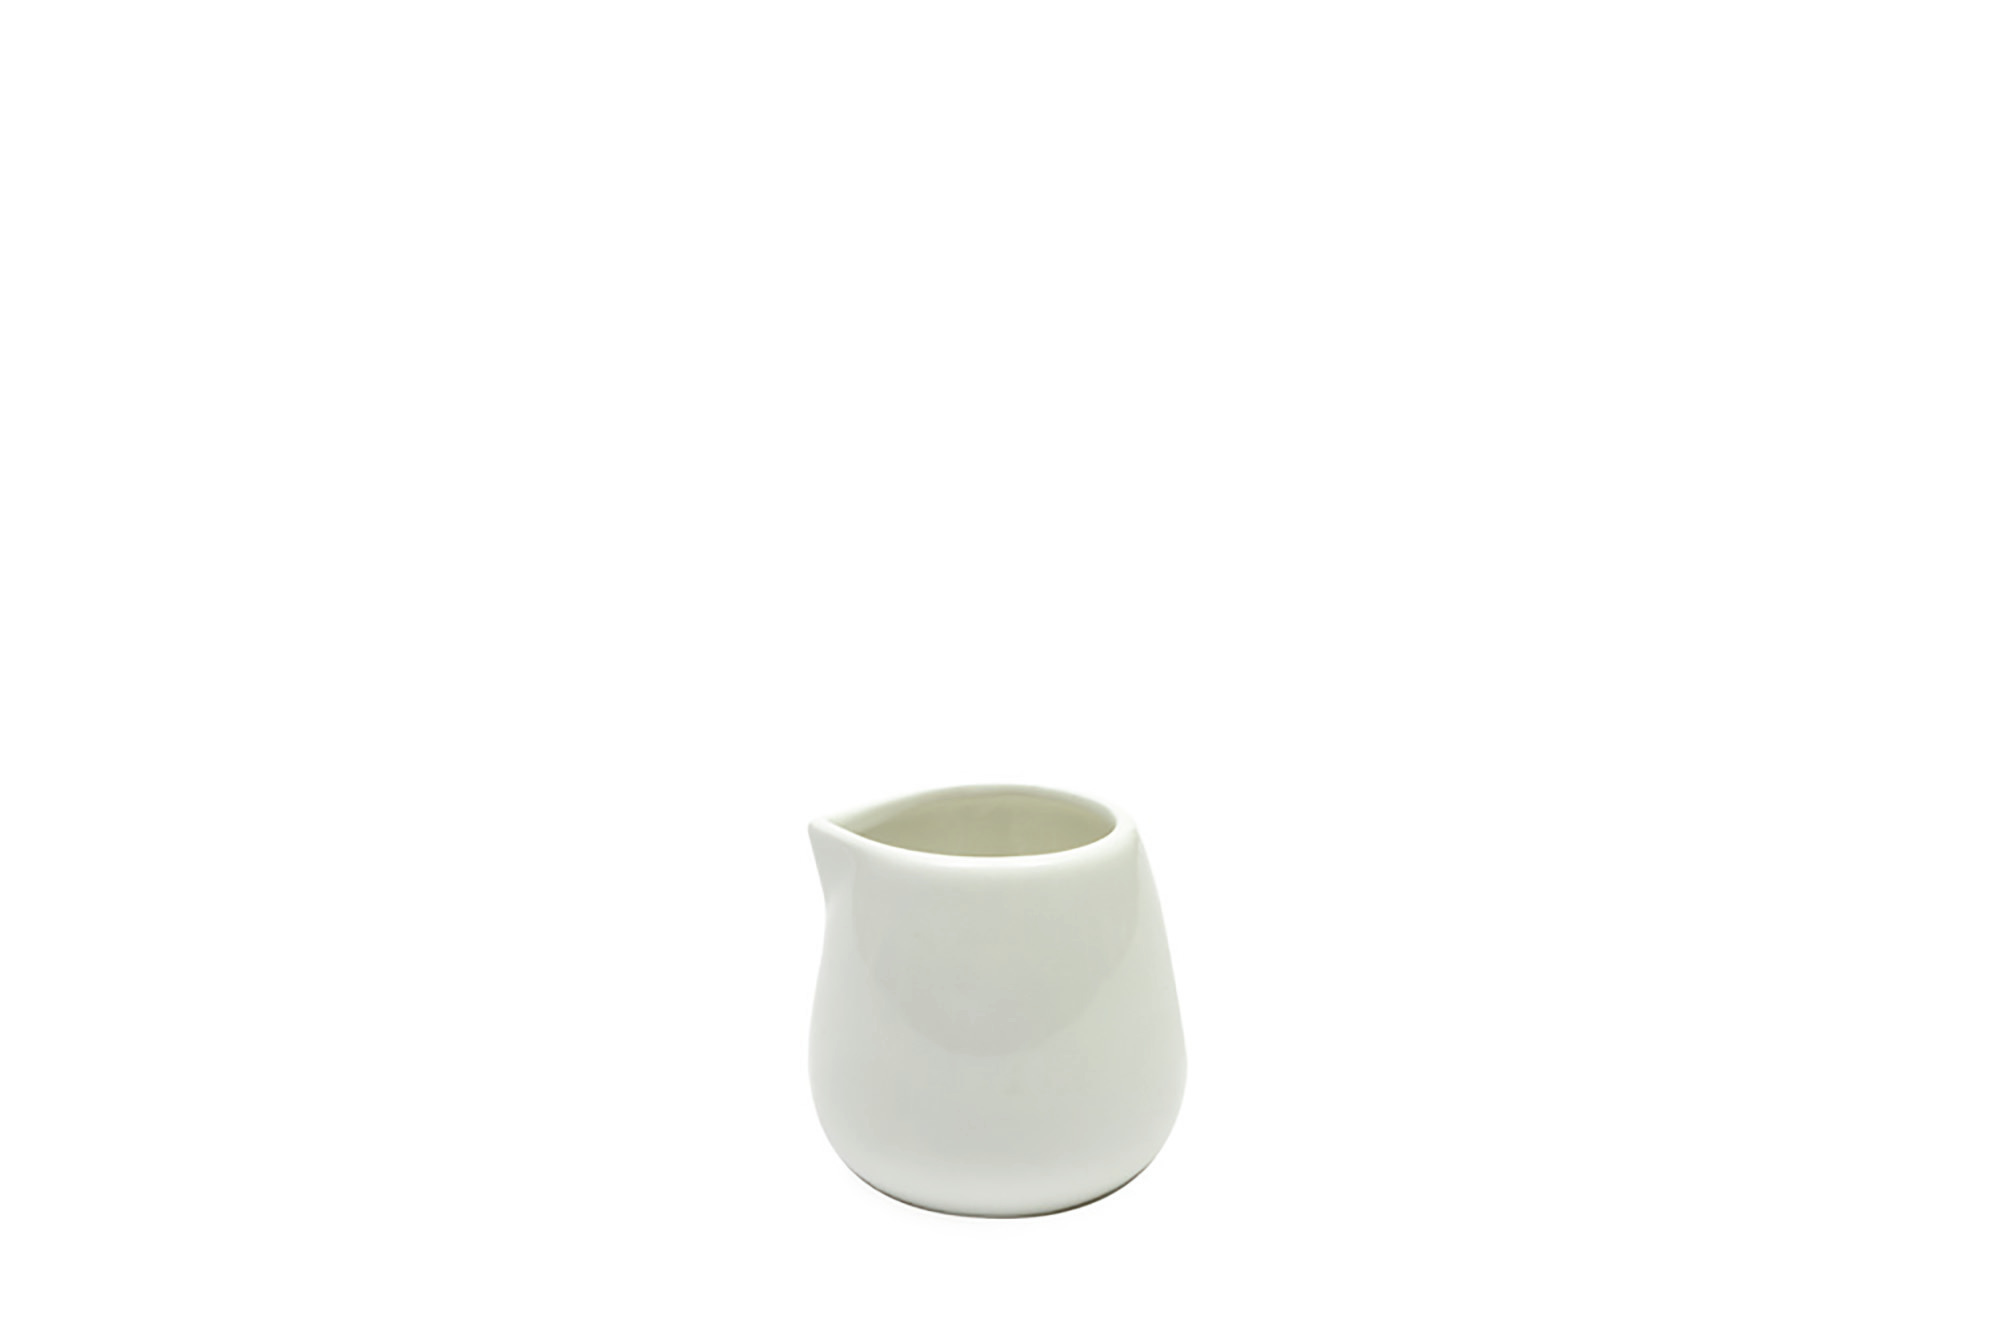 Maxwell & Williams White Basics 50Ml Milk Jug No Handle